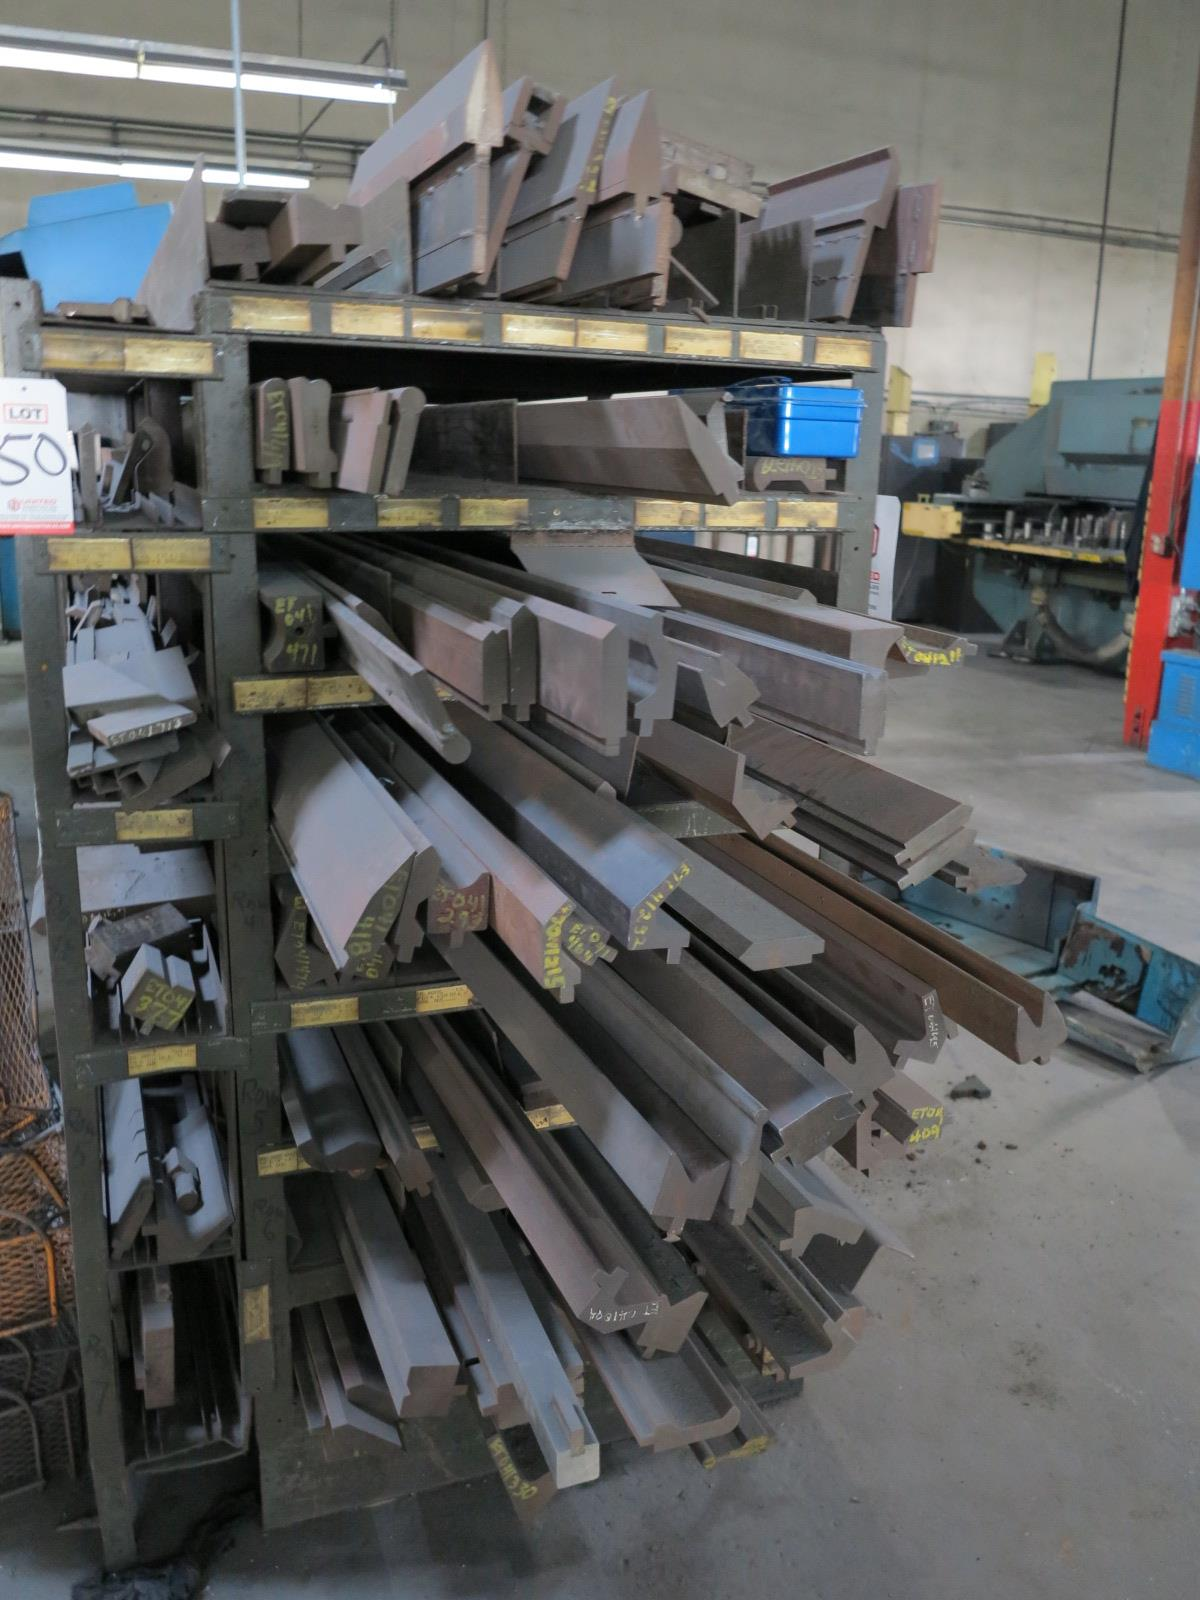 LOT - LARGE QUANTITY OF BRAKE DIES, RACK INCLUDED - Image 2 of 4